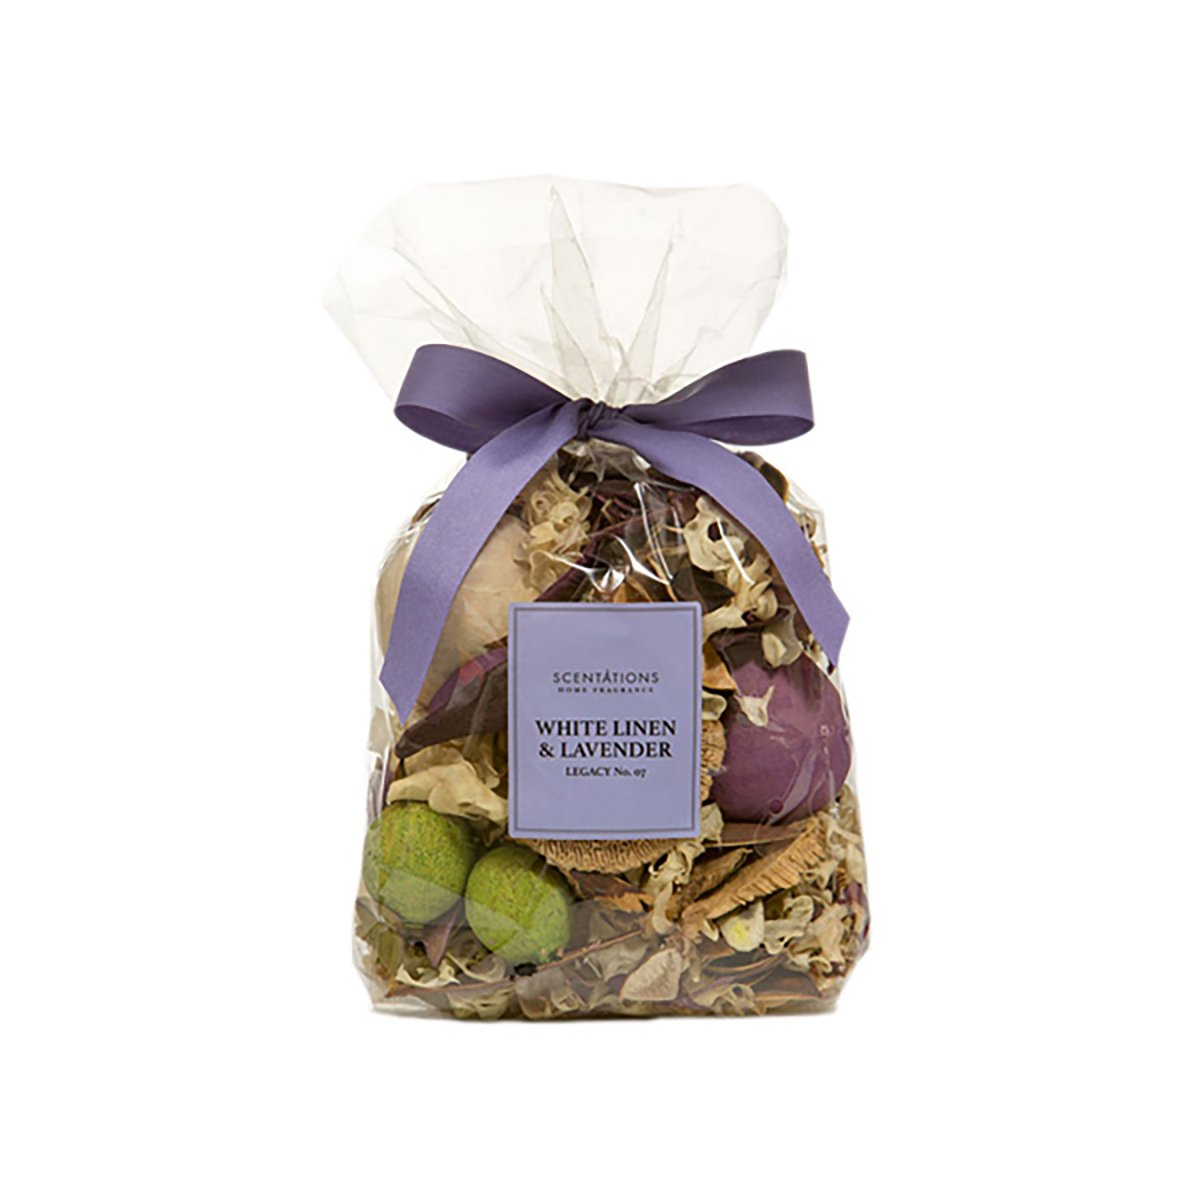 Scentations Potpourri - White Linen & Lavender Legacy No. 07, Scented, 8 oz Bag by Scentations